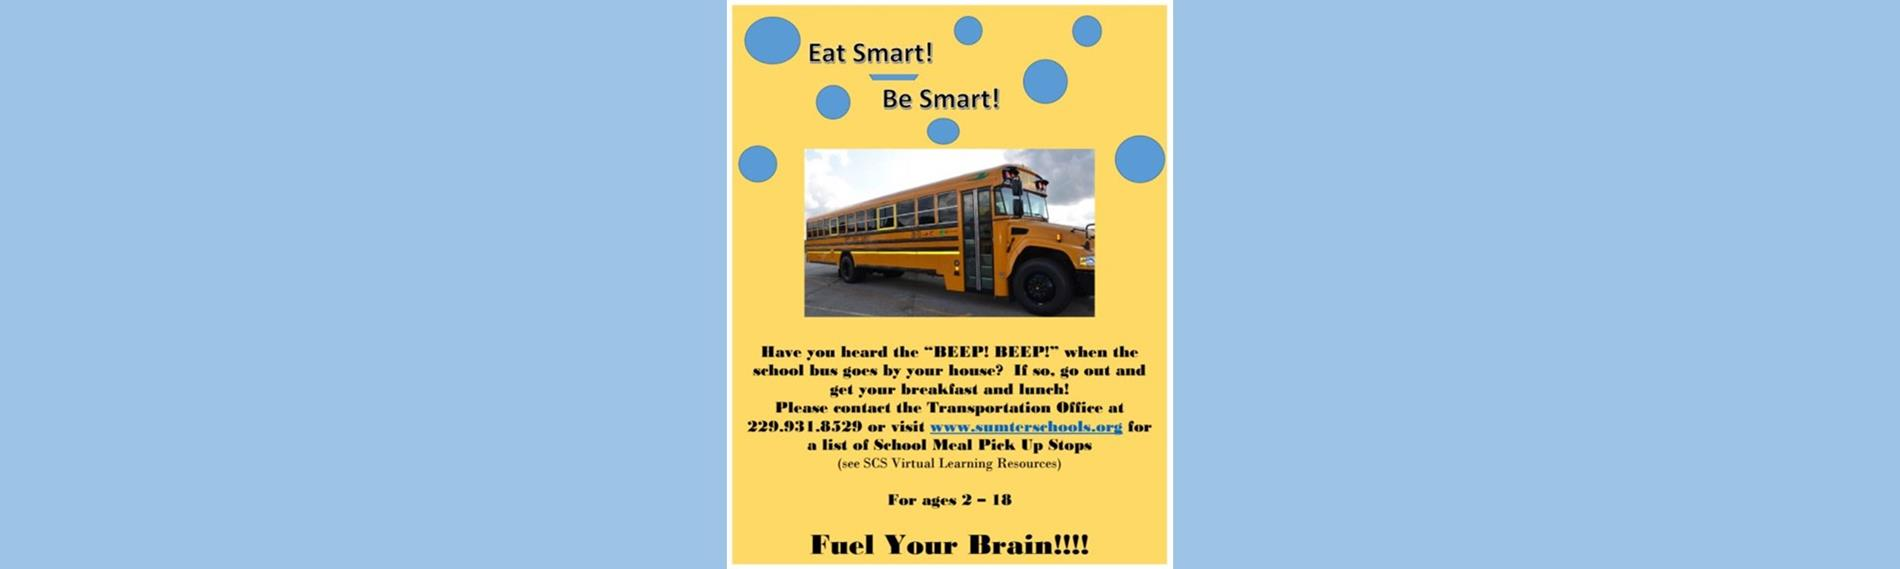 Nutrition Flyer with bus